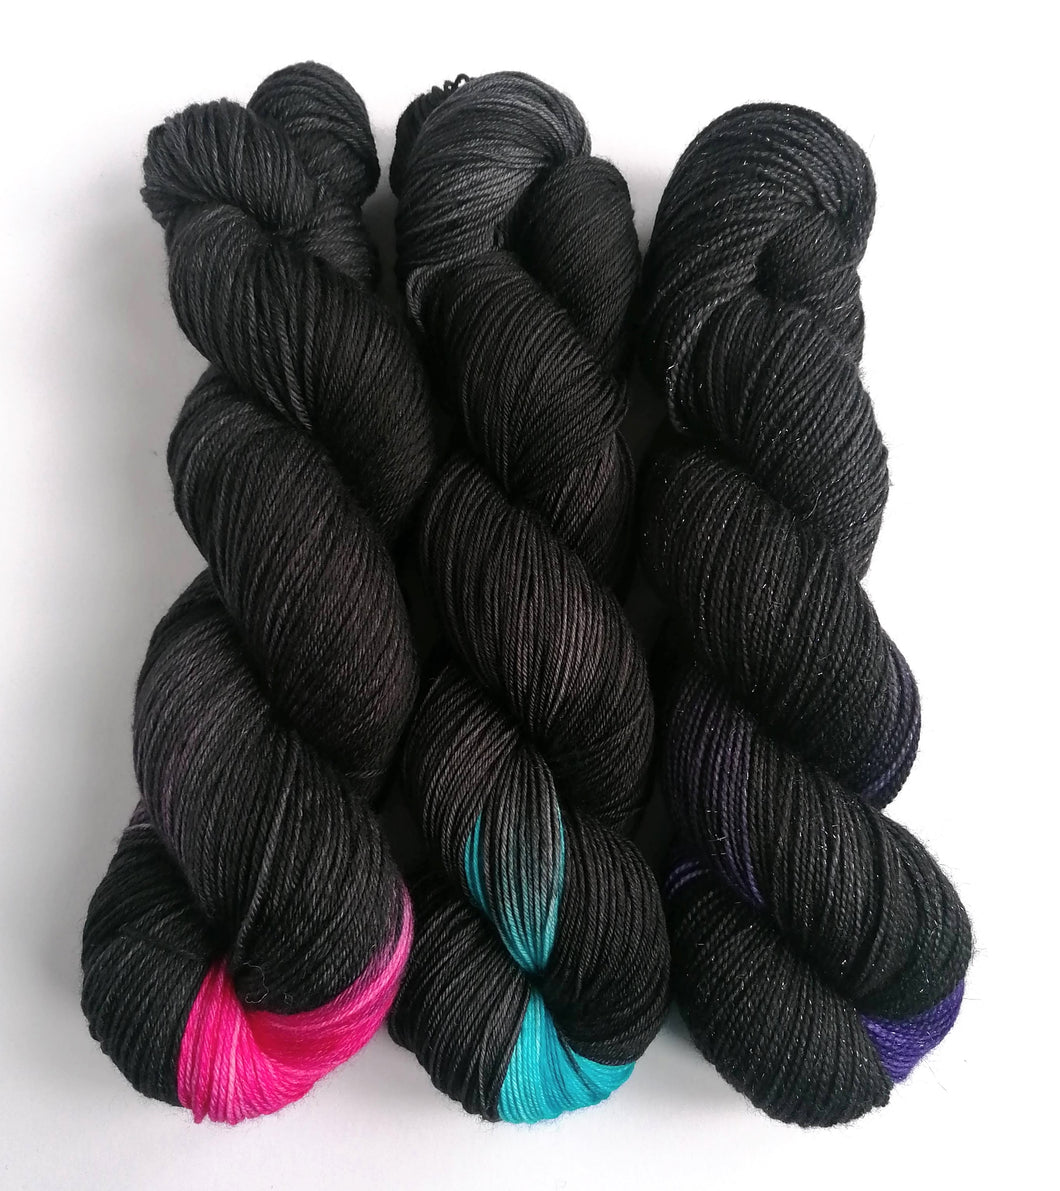 Hand dyed yarn pre-order - Black Like My Heart - Dyed to Order. Request colour at checkout.